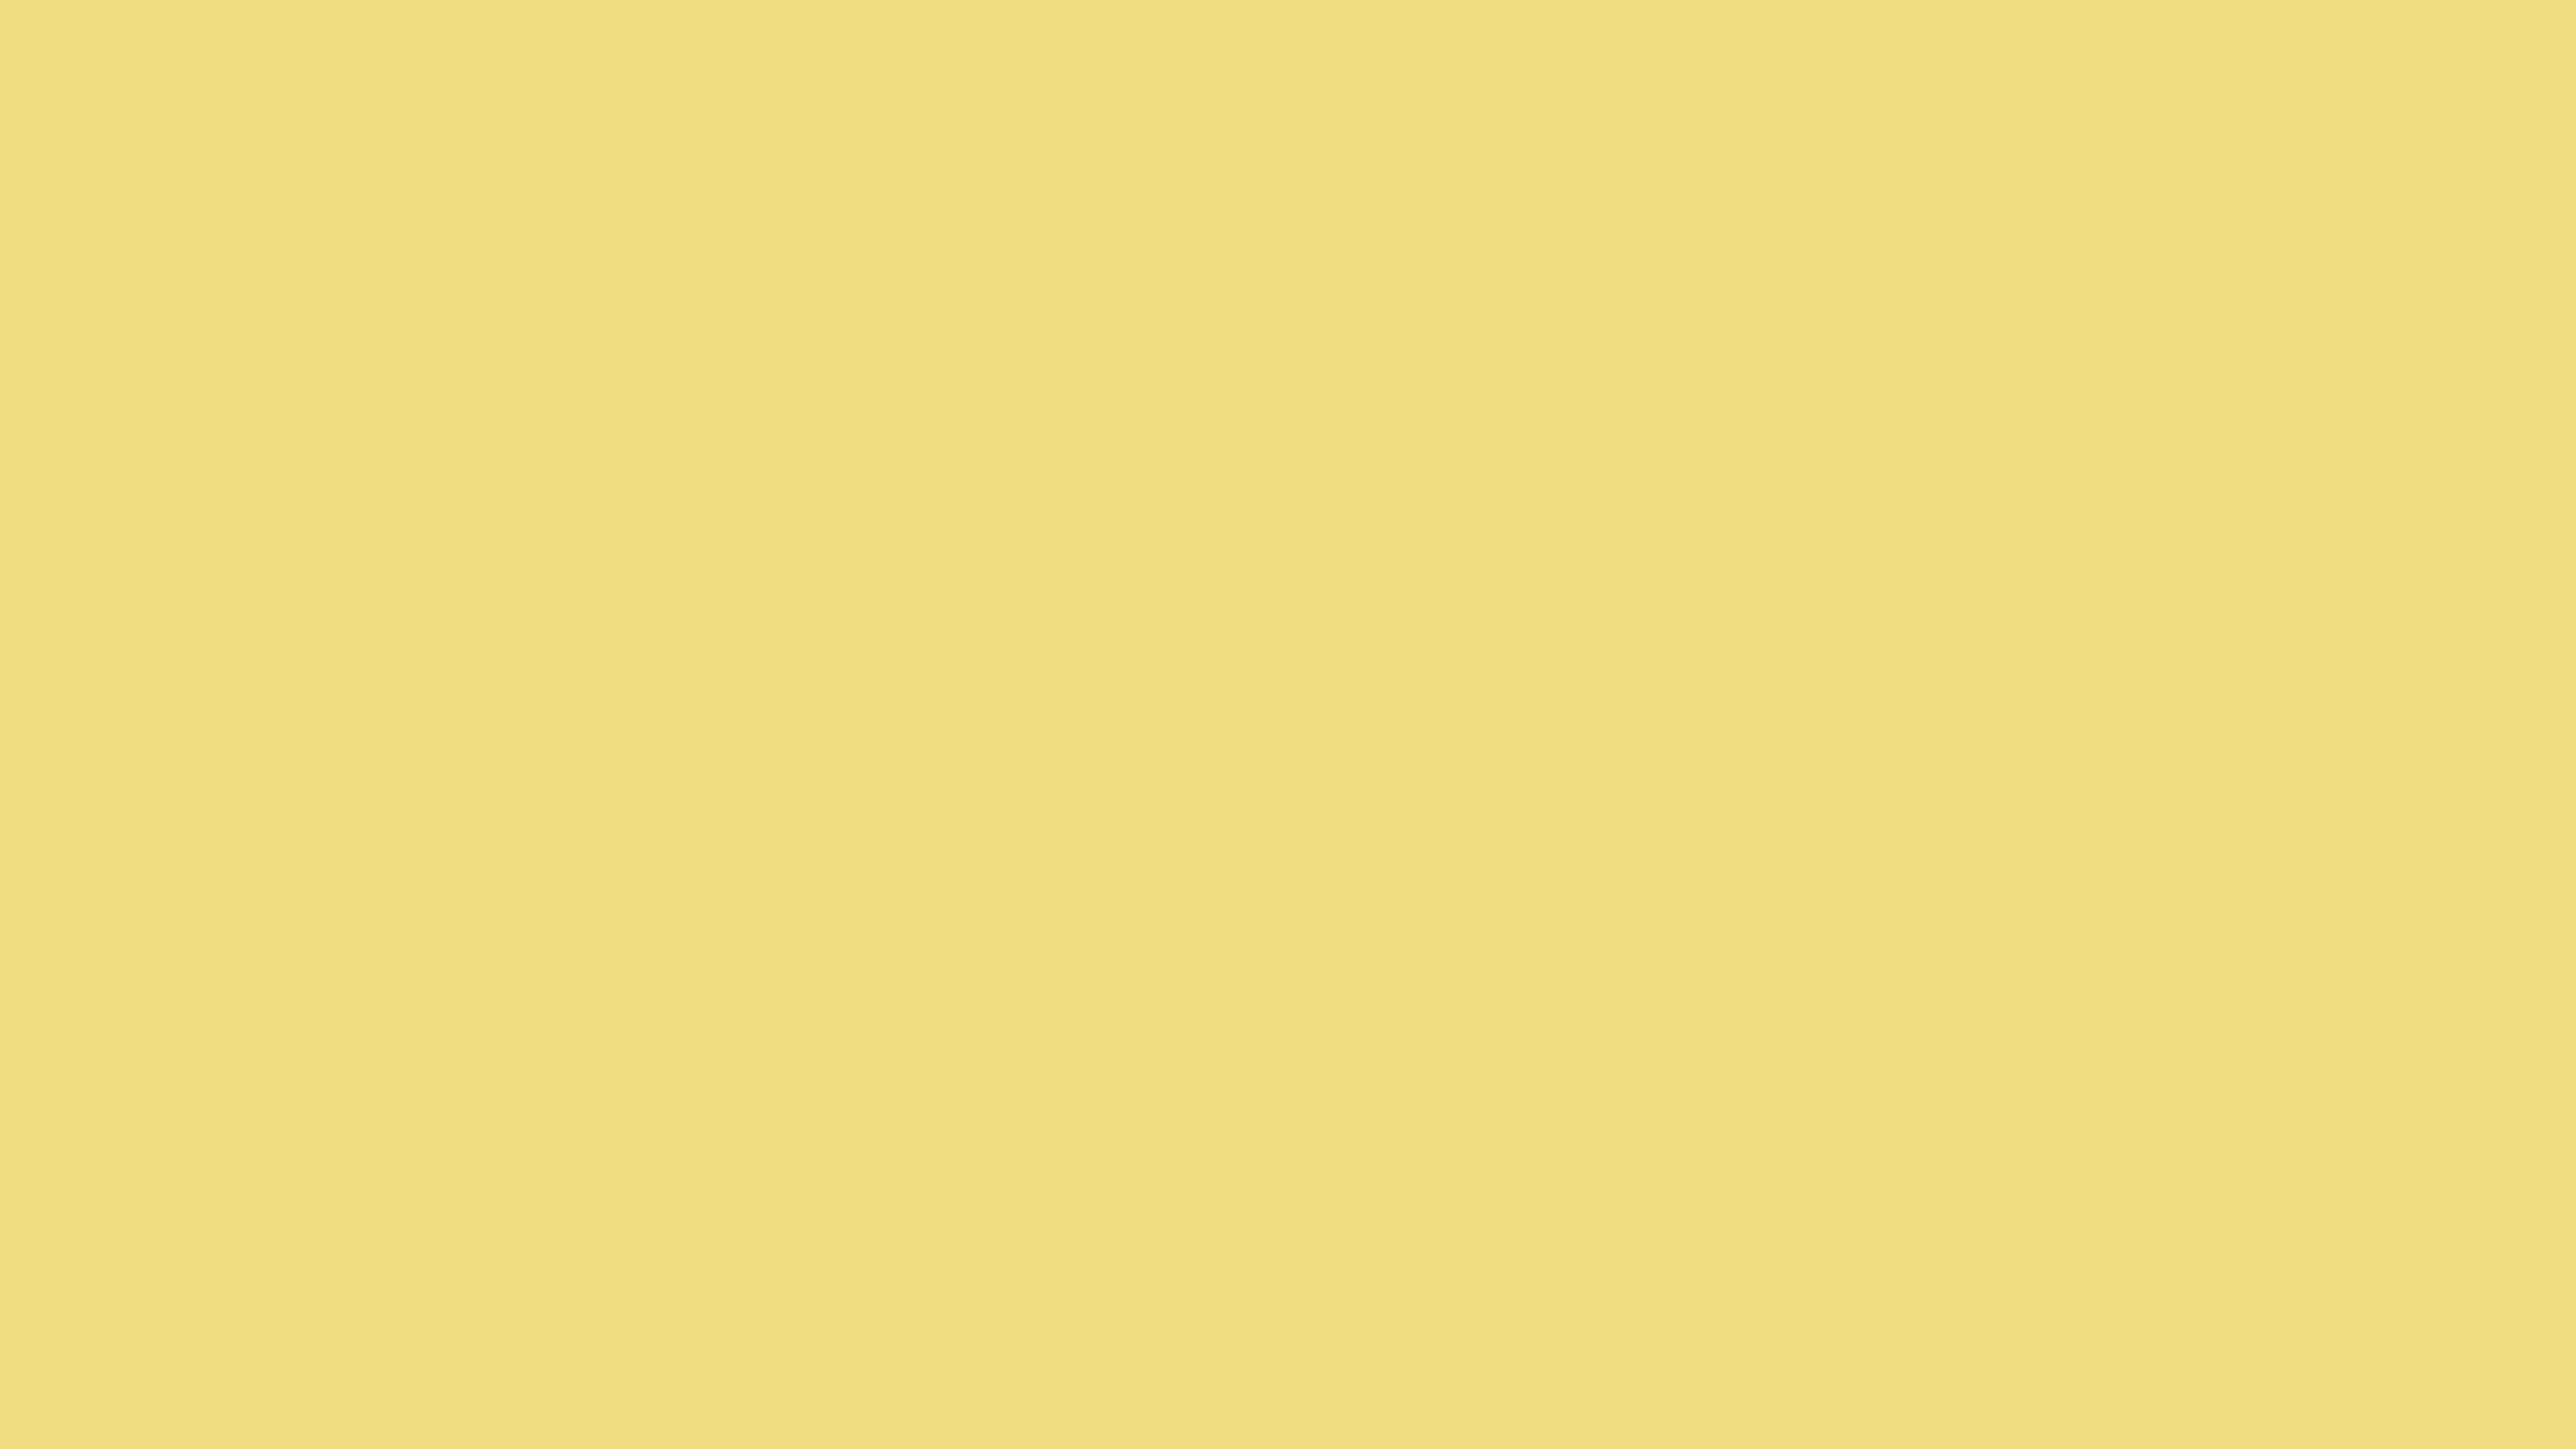 5120x2880 Buff Solid Color Background